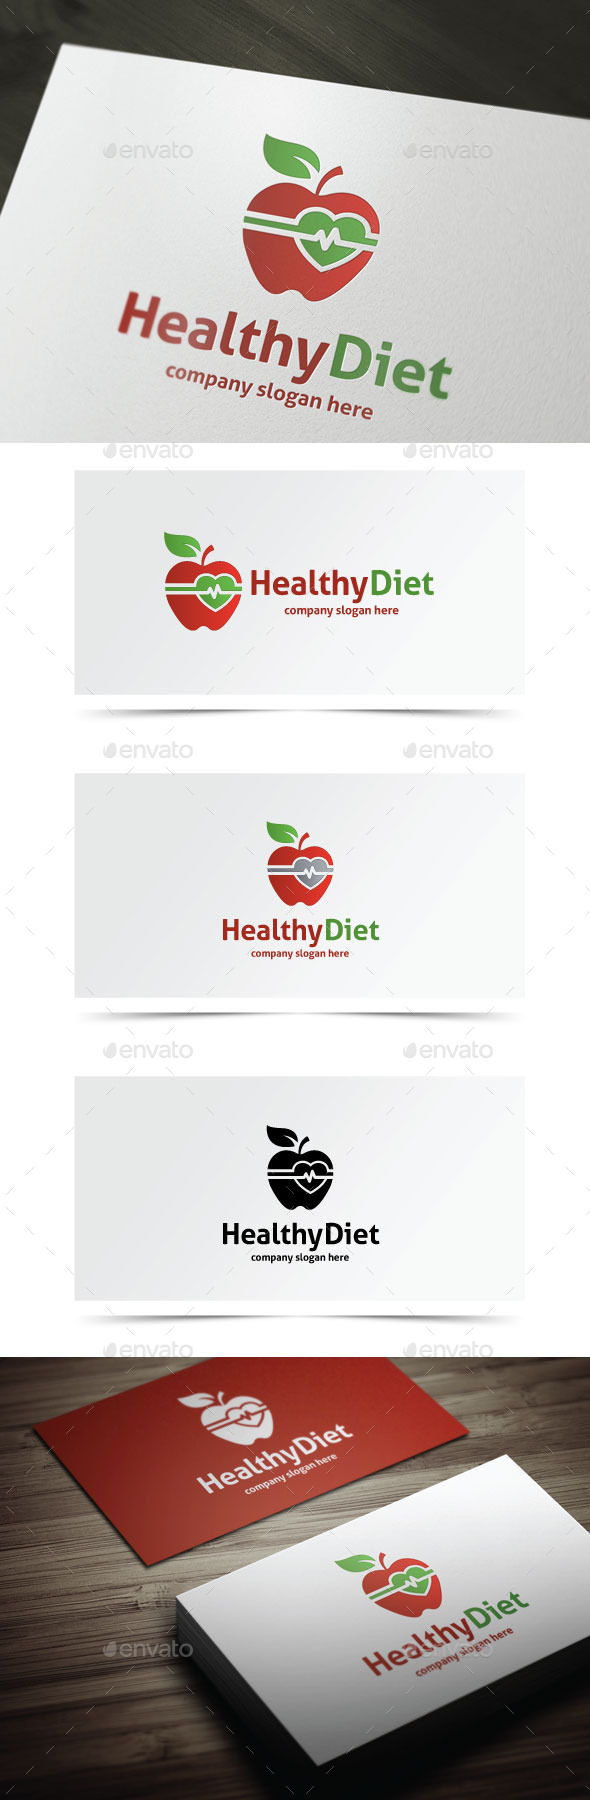 GraphicRiver Healthy Diet 9574786